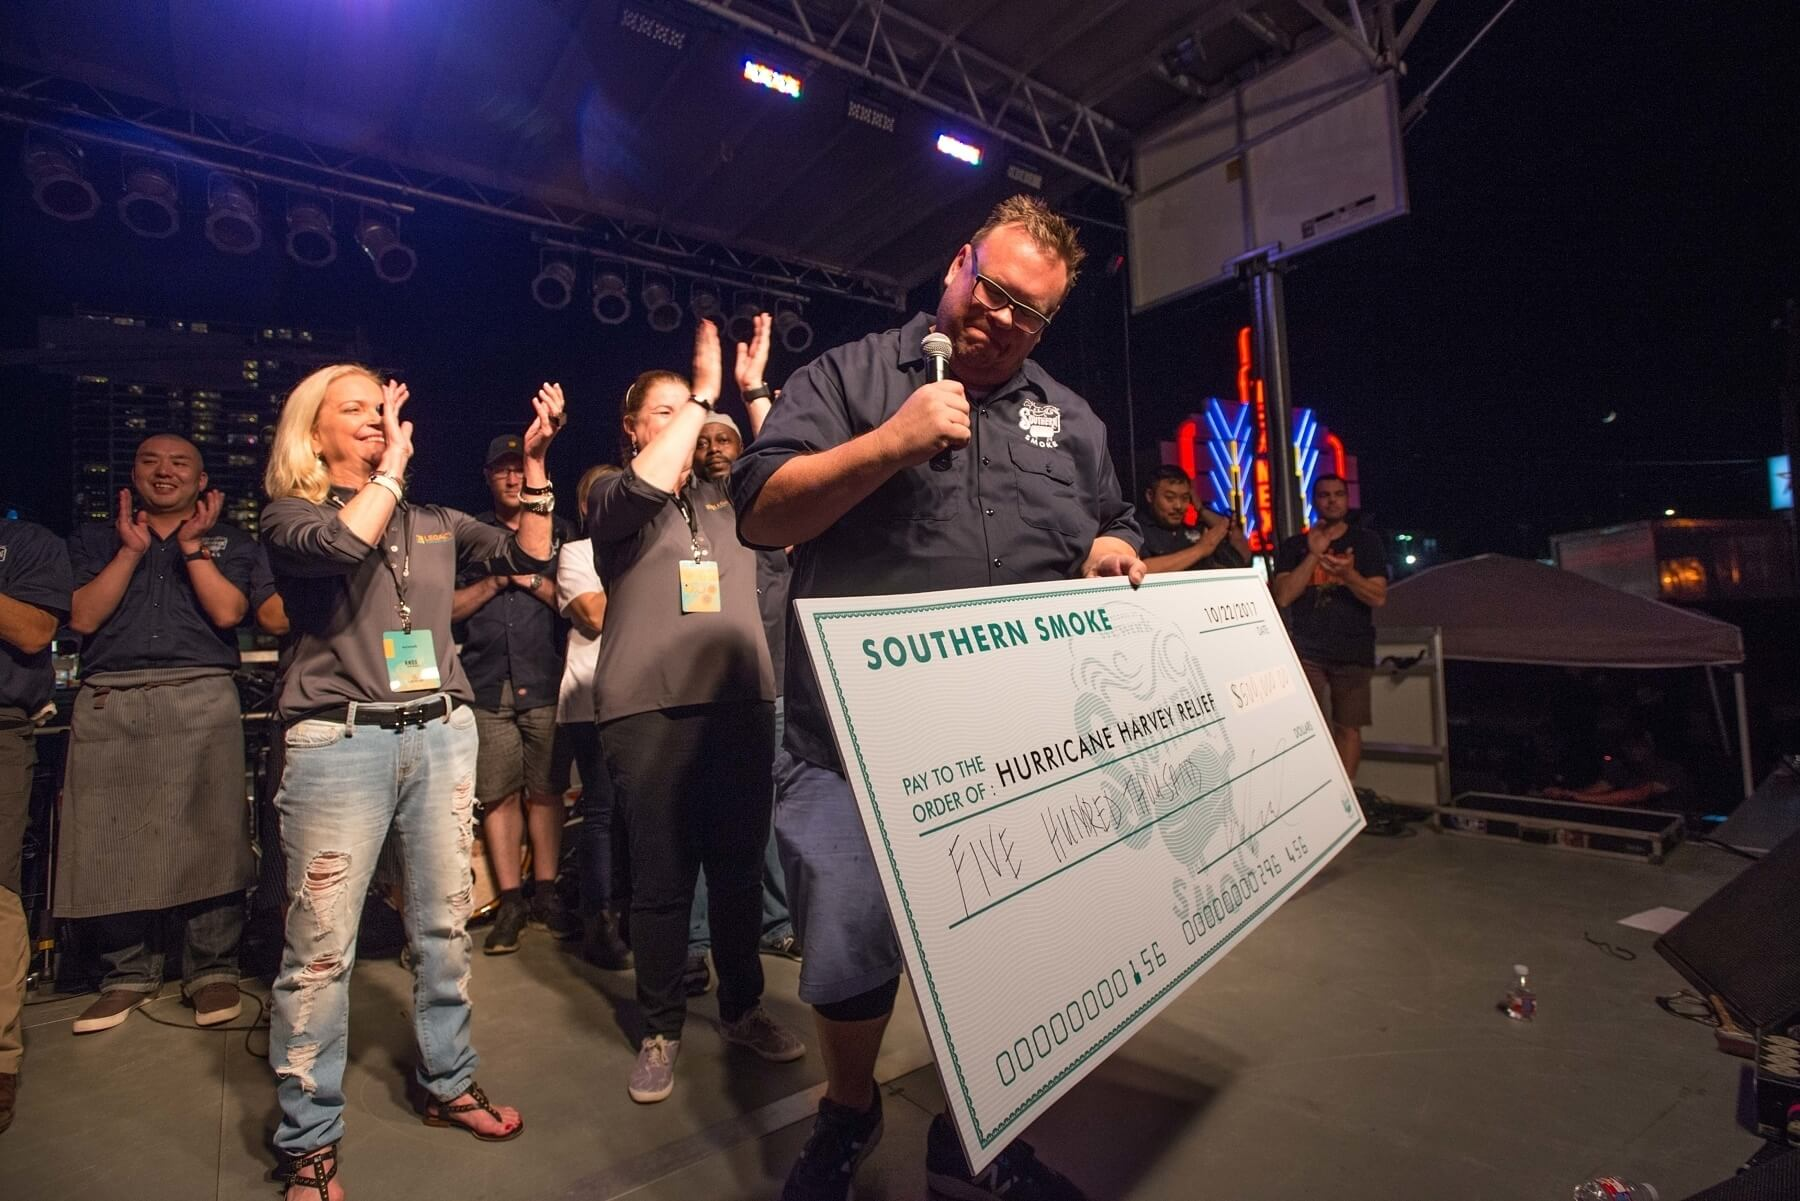 Southern Smoke, spearheaded by James Beard award winning chef Chris Shepherd, raises $500,000 for Houston Harvey Relief. Image: